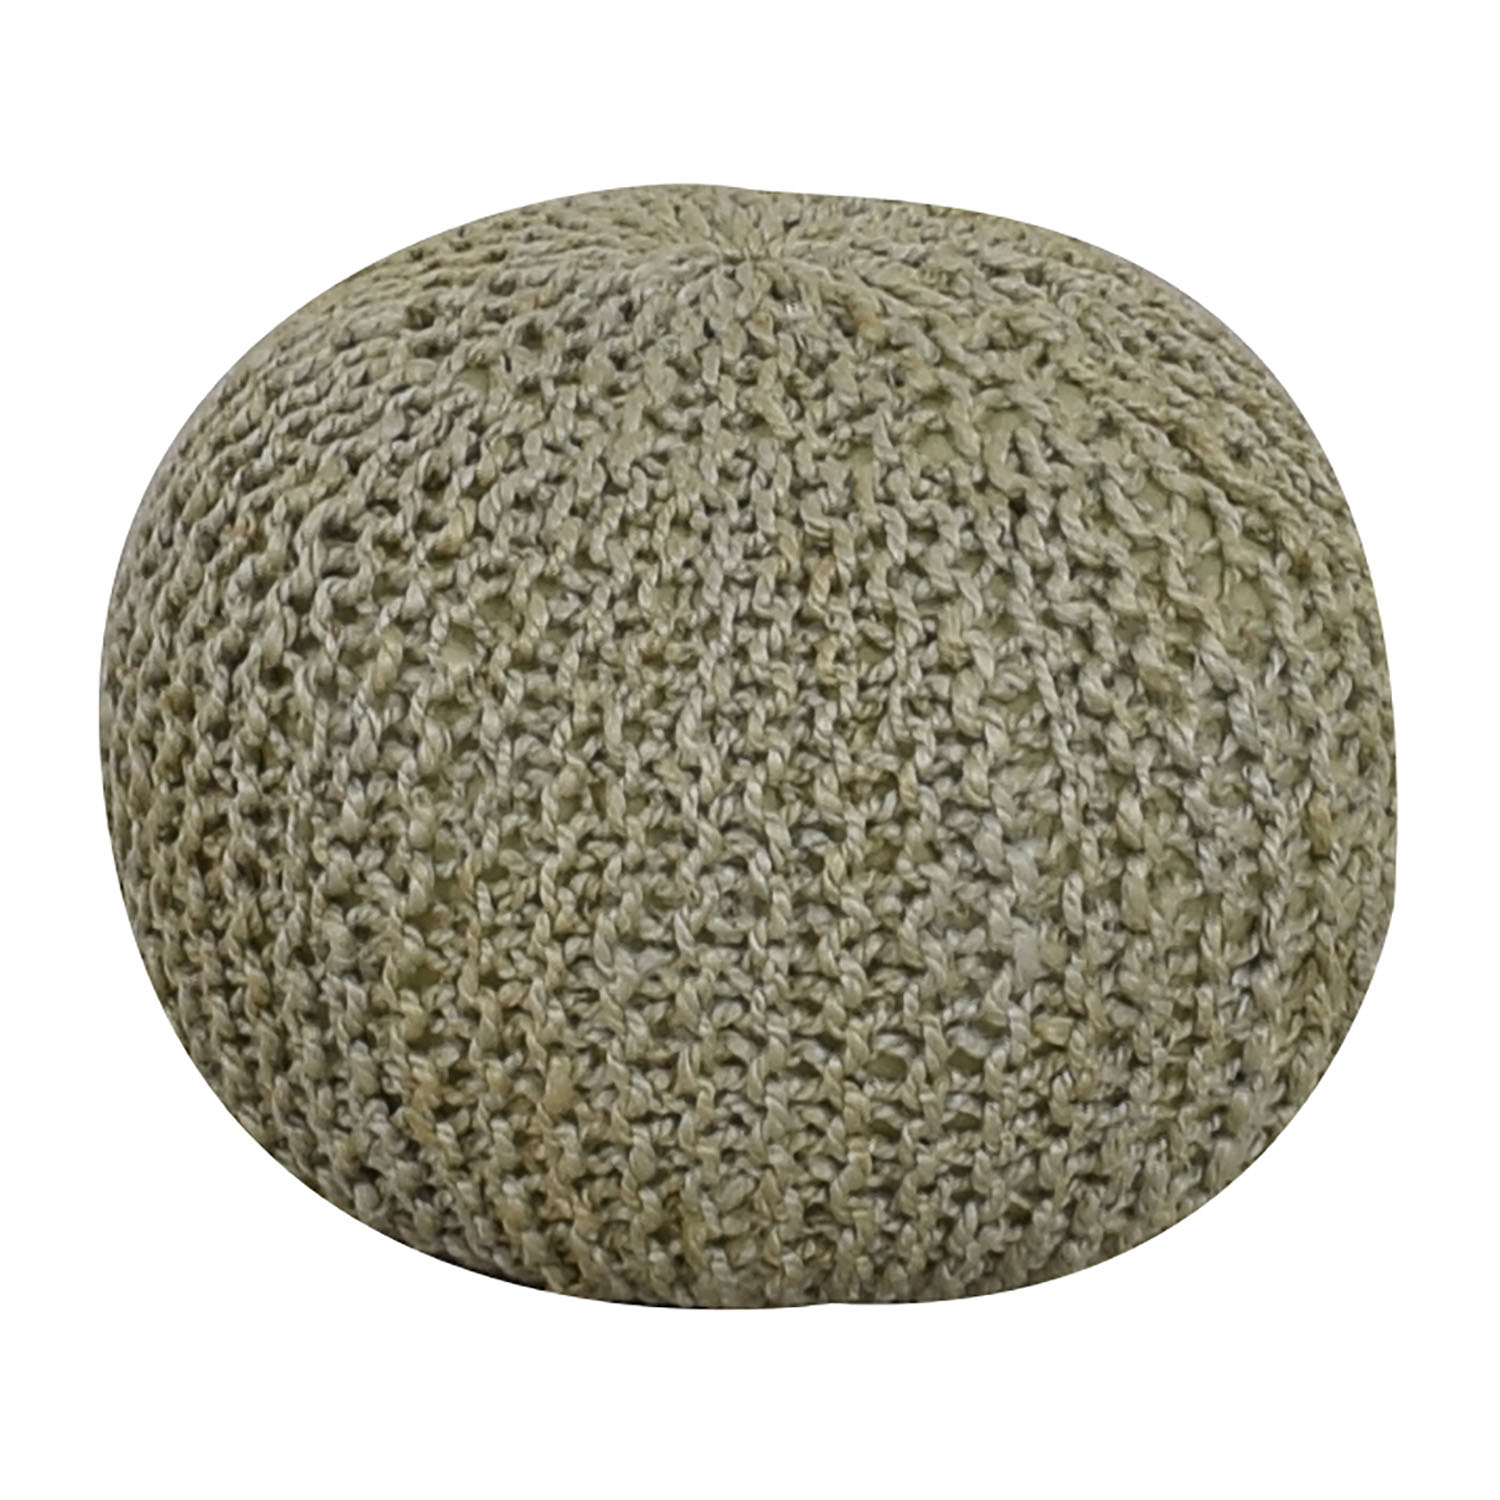 Beachcrest Pouf Beachcrest Pouf Mint Round Ottoman on sale